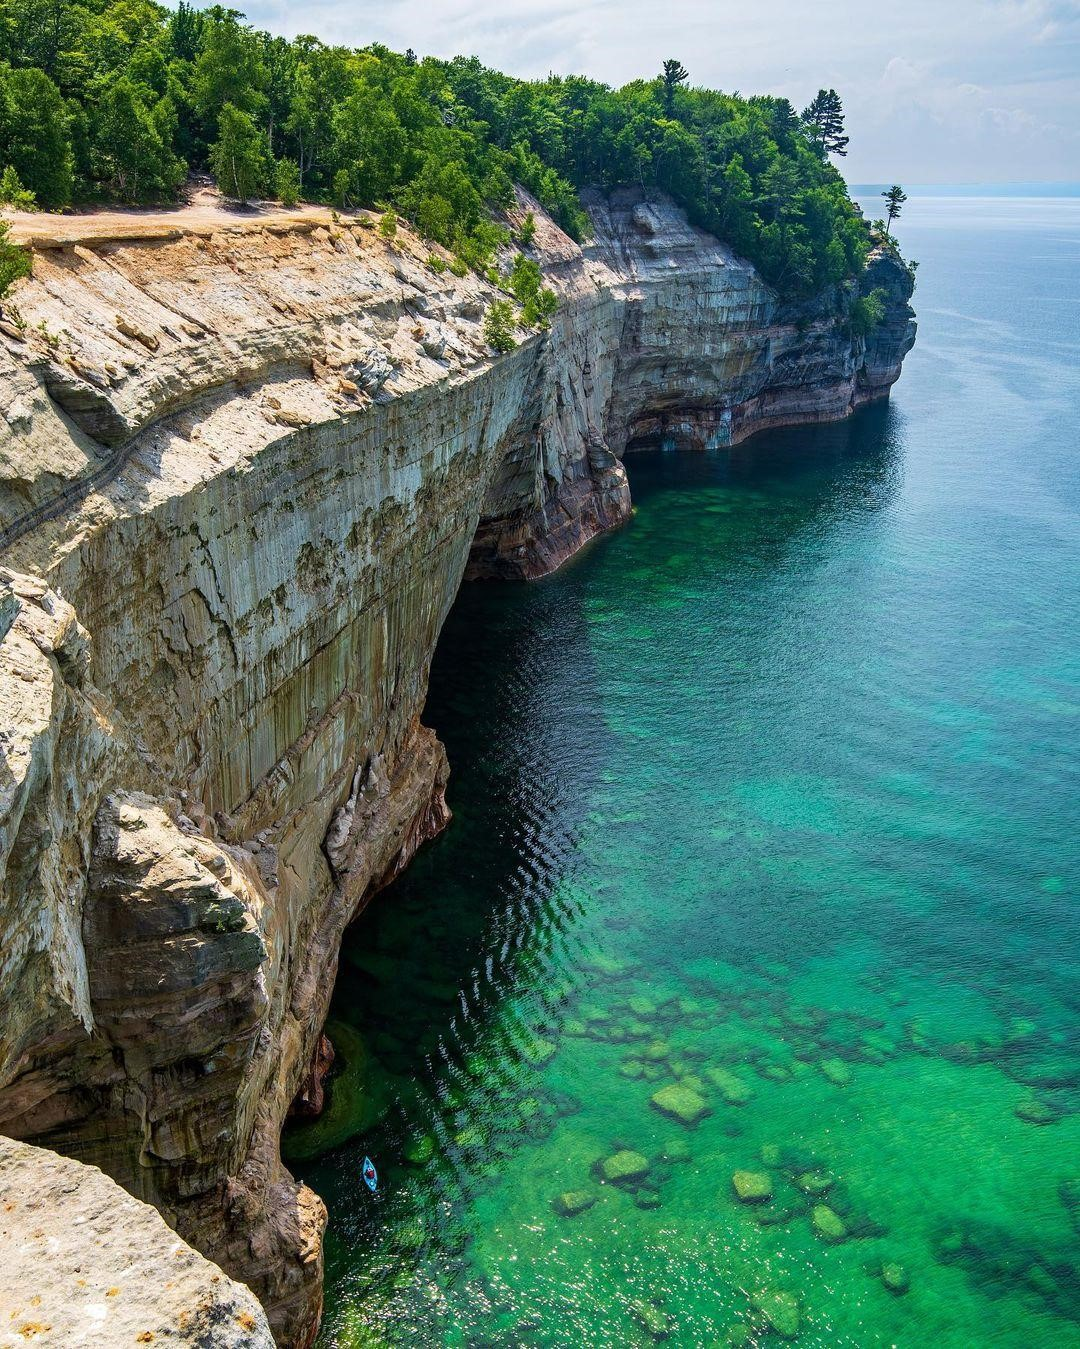 The cliffs of the Pictured Rocks and clear waters of Lake Superior